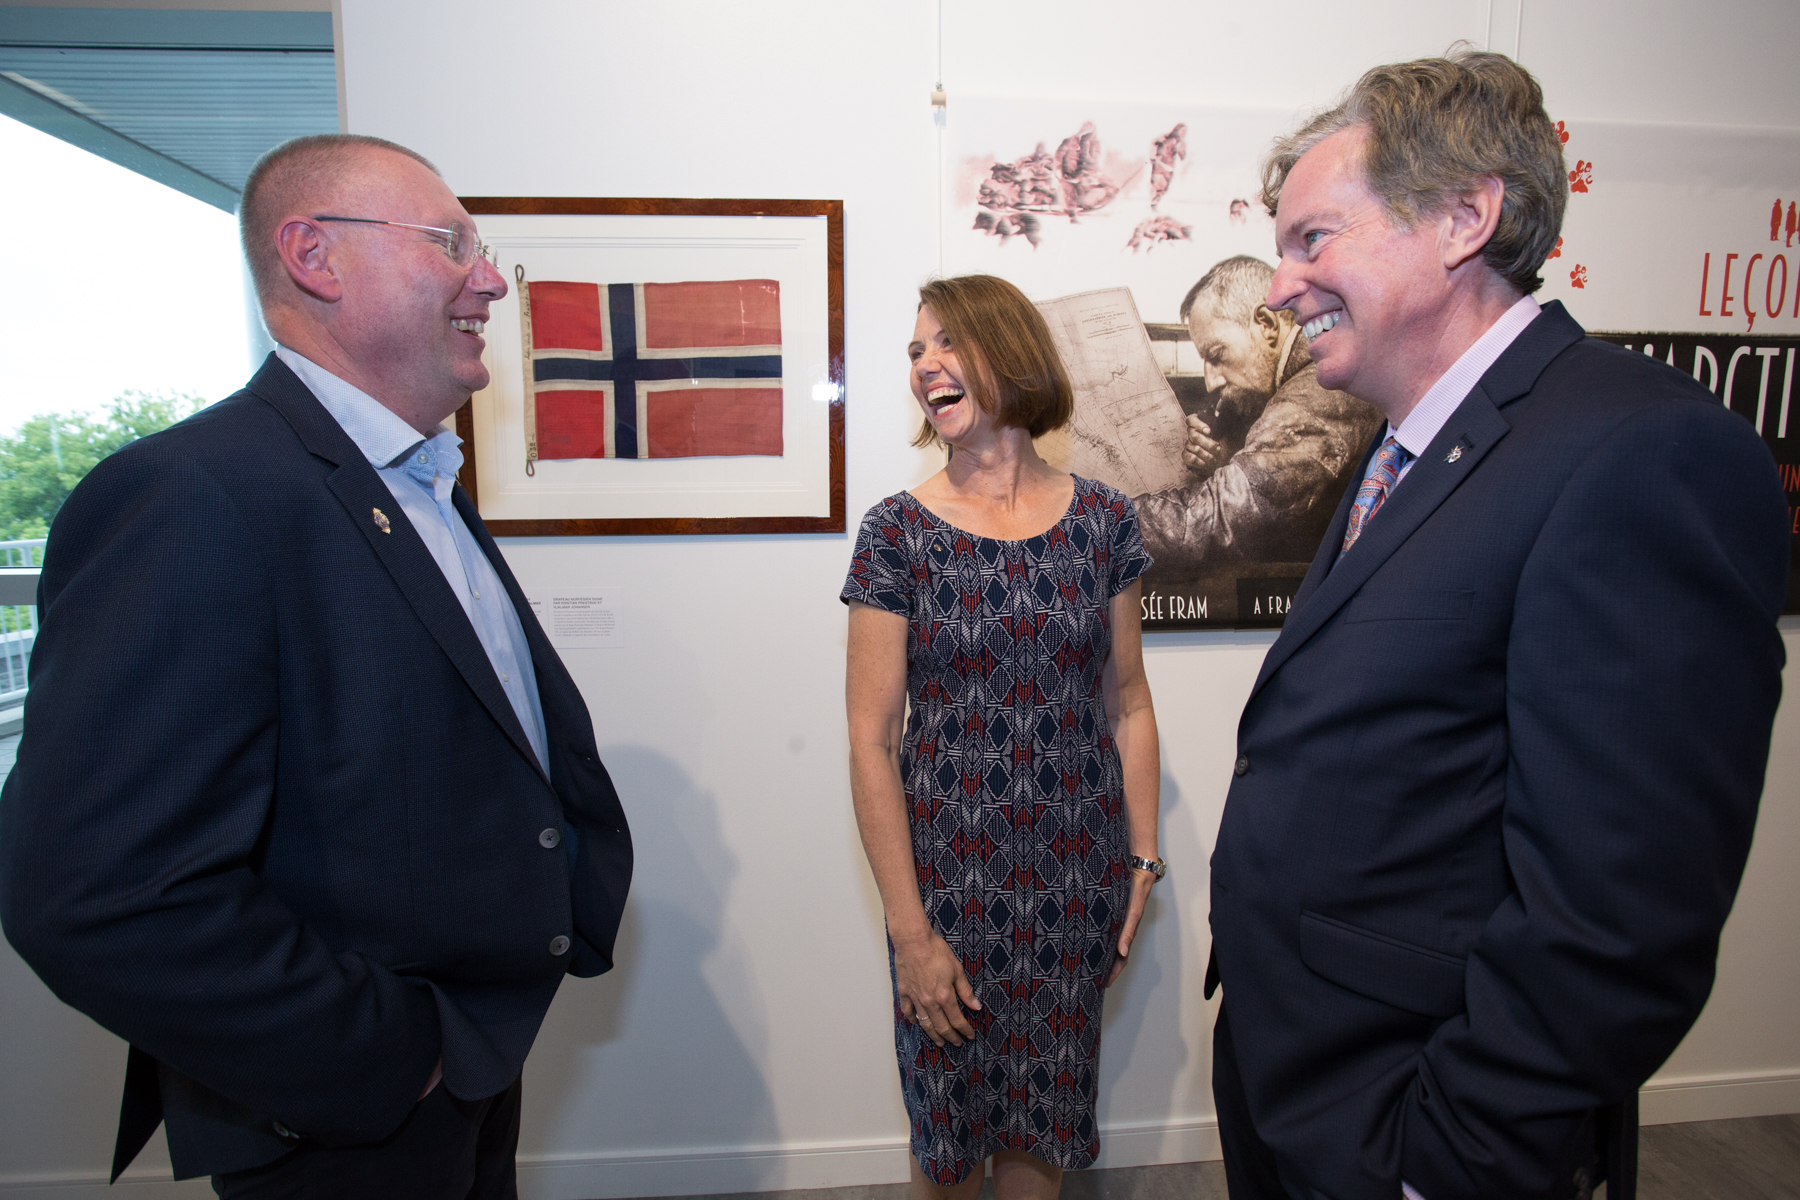 **Geir Kløver, director of Norway's Fram Museum, left, shares a laugh with Her Excellency, Anne Kari Hansen Ovind, Ambassador of Norway, and RCGS CEO John Geiger during the opening of Lessons from the Arctic on Wednesday, June 27. (Photo: Ben Powless/Canadian Geographic)**